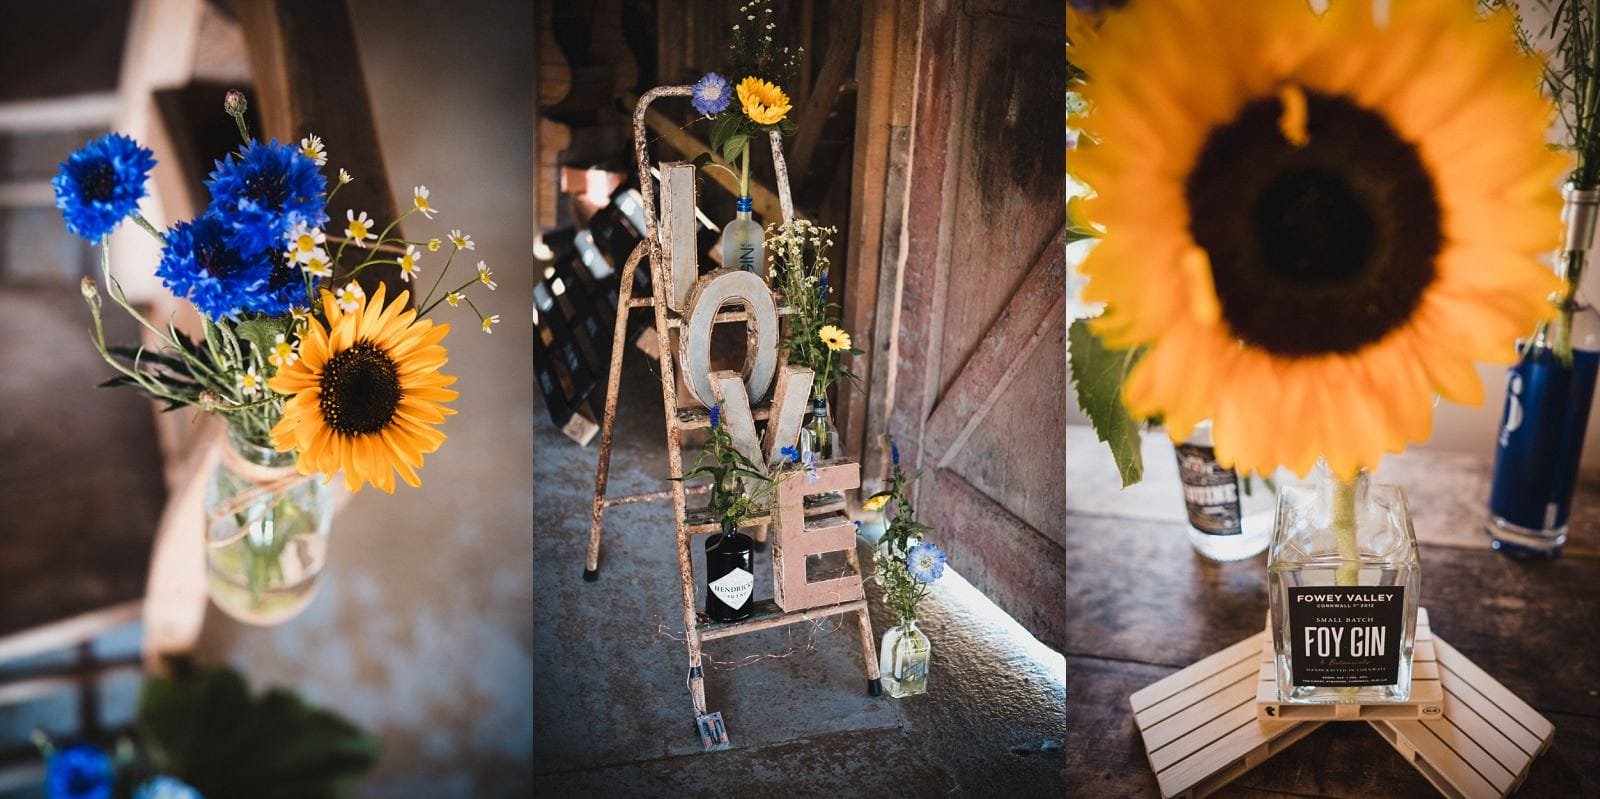 Wedding decorations at Nancarrow Farm with sunflowers and vintage bottles